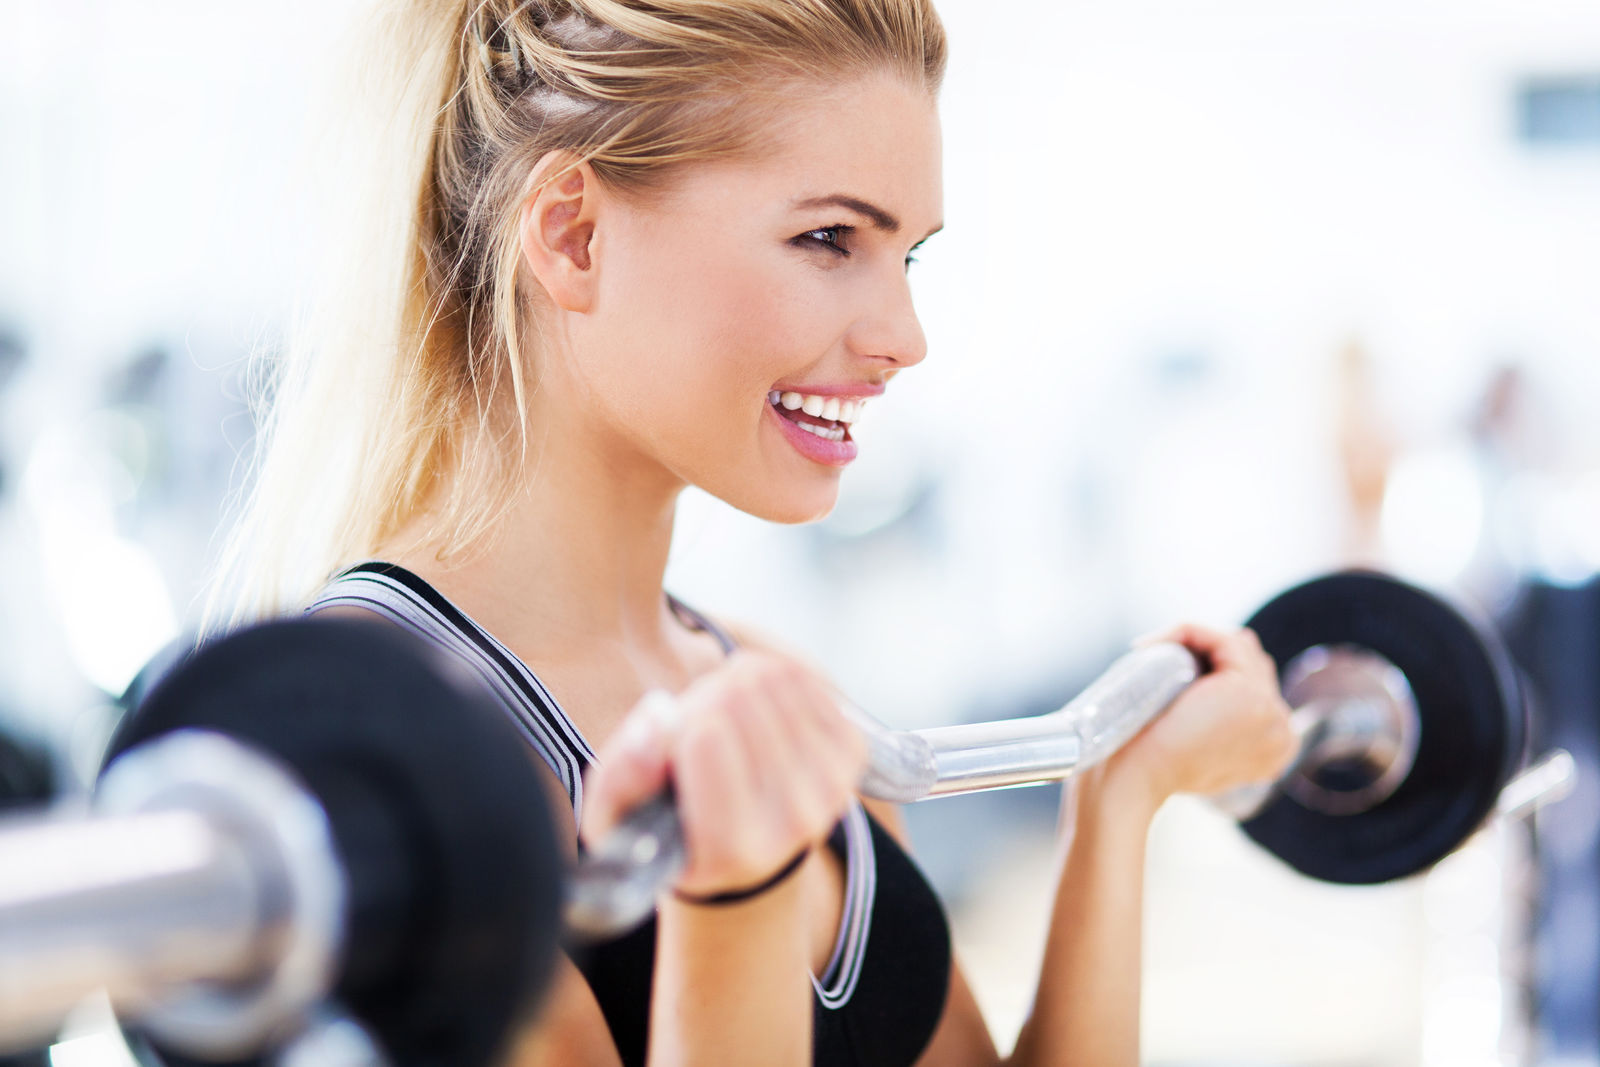 5 Weight Training Safety Tips